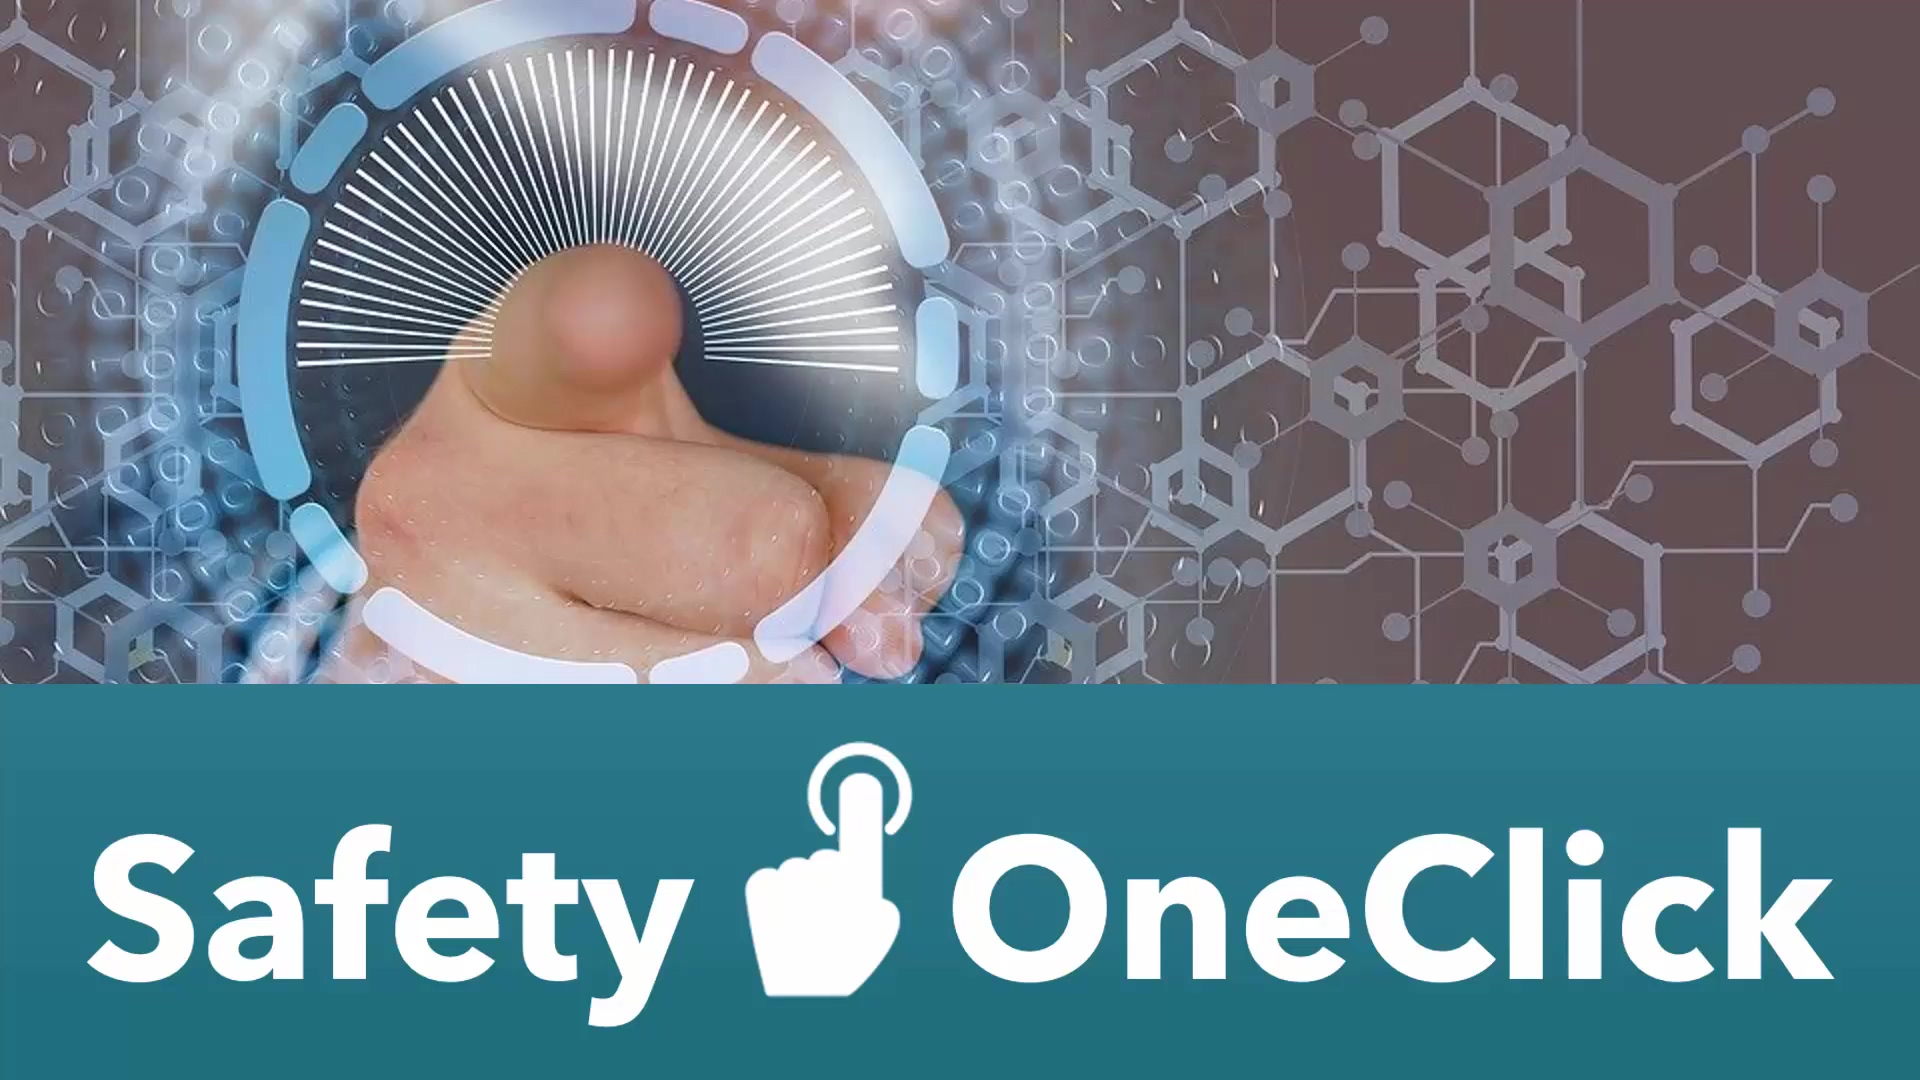 Safety+OneClick